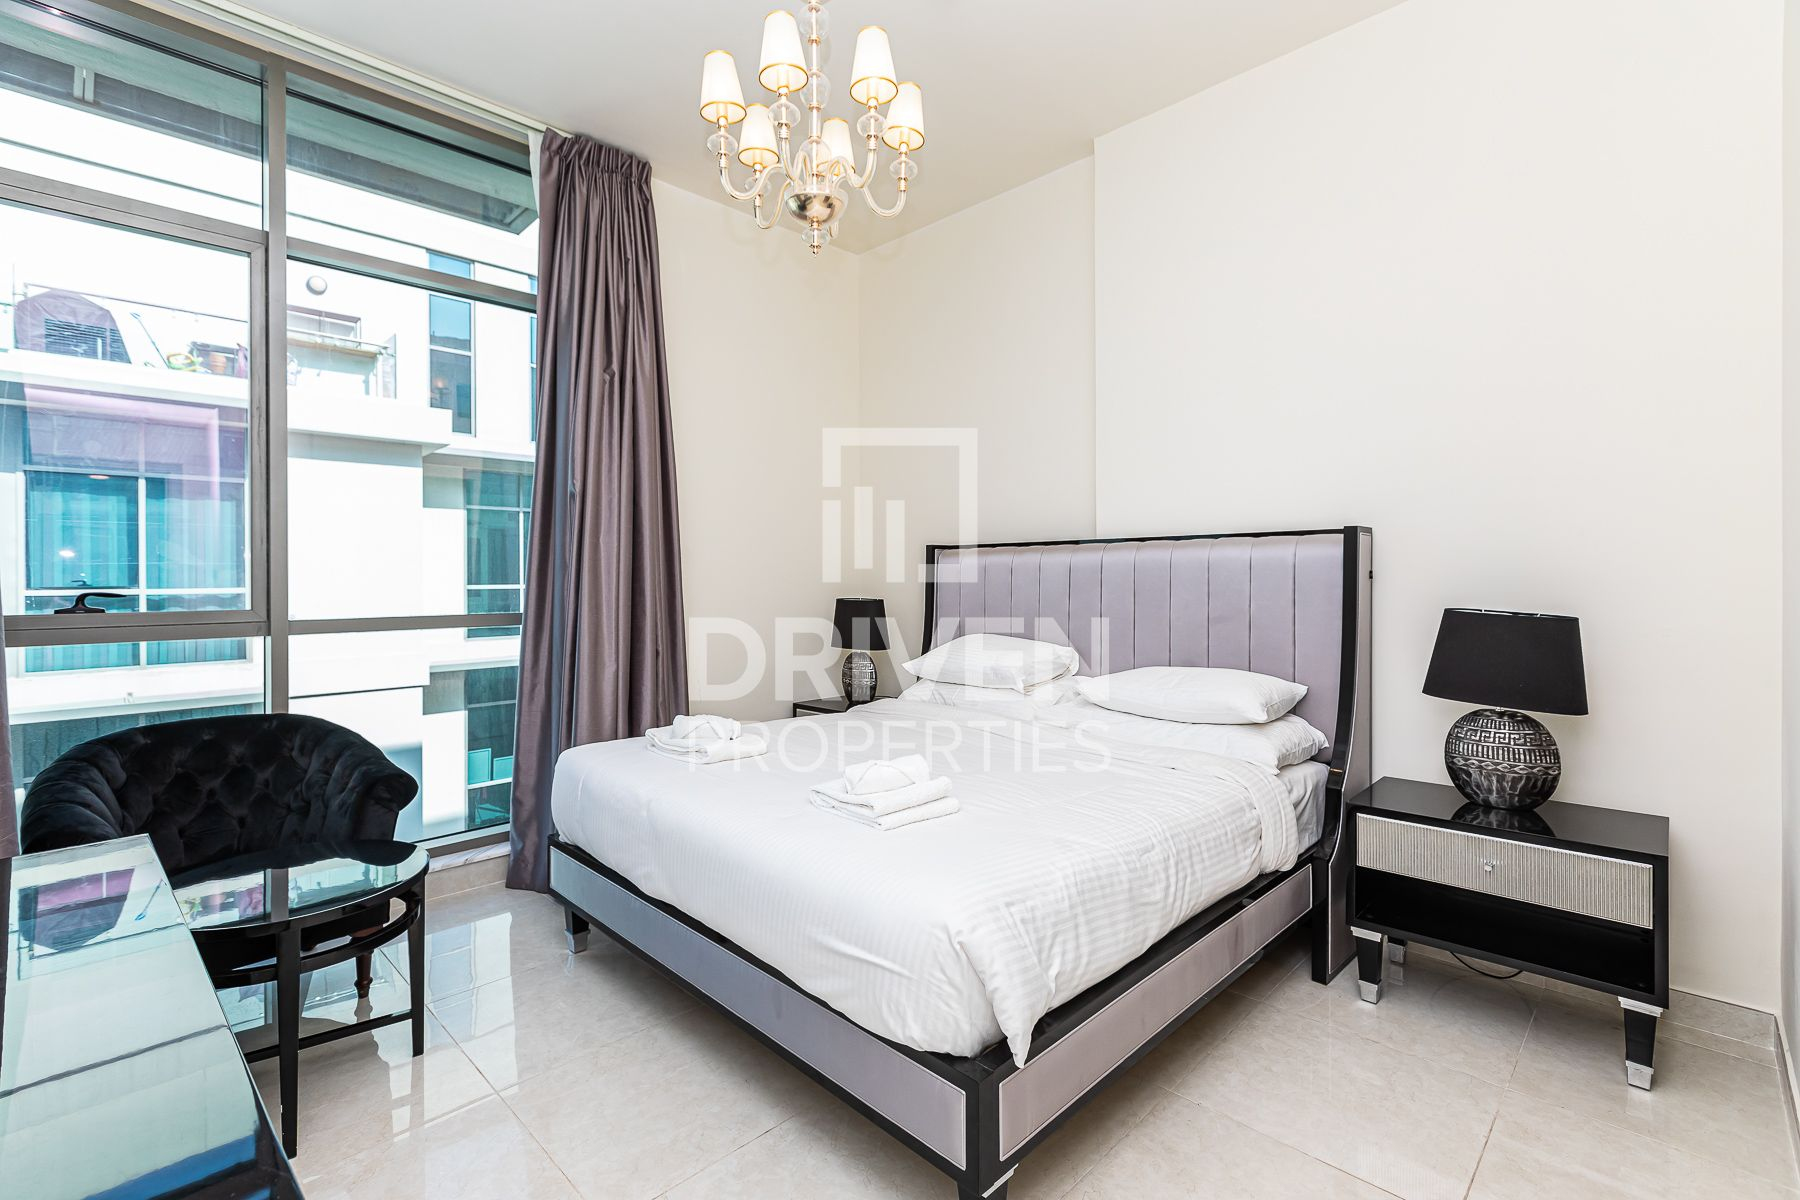 Homely and Furnished Apt | Large Terrace